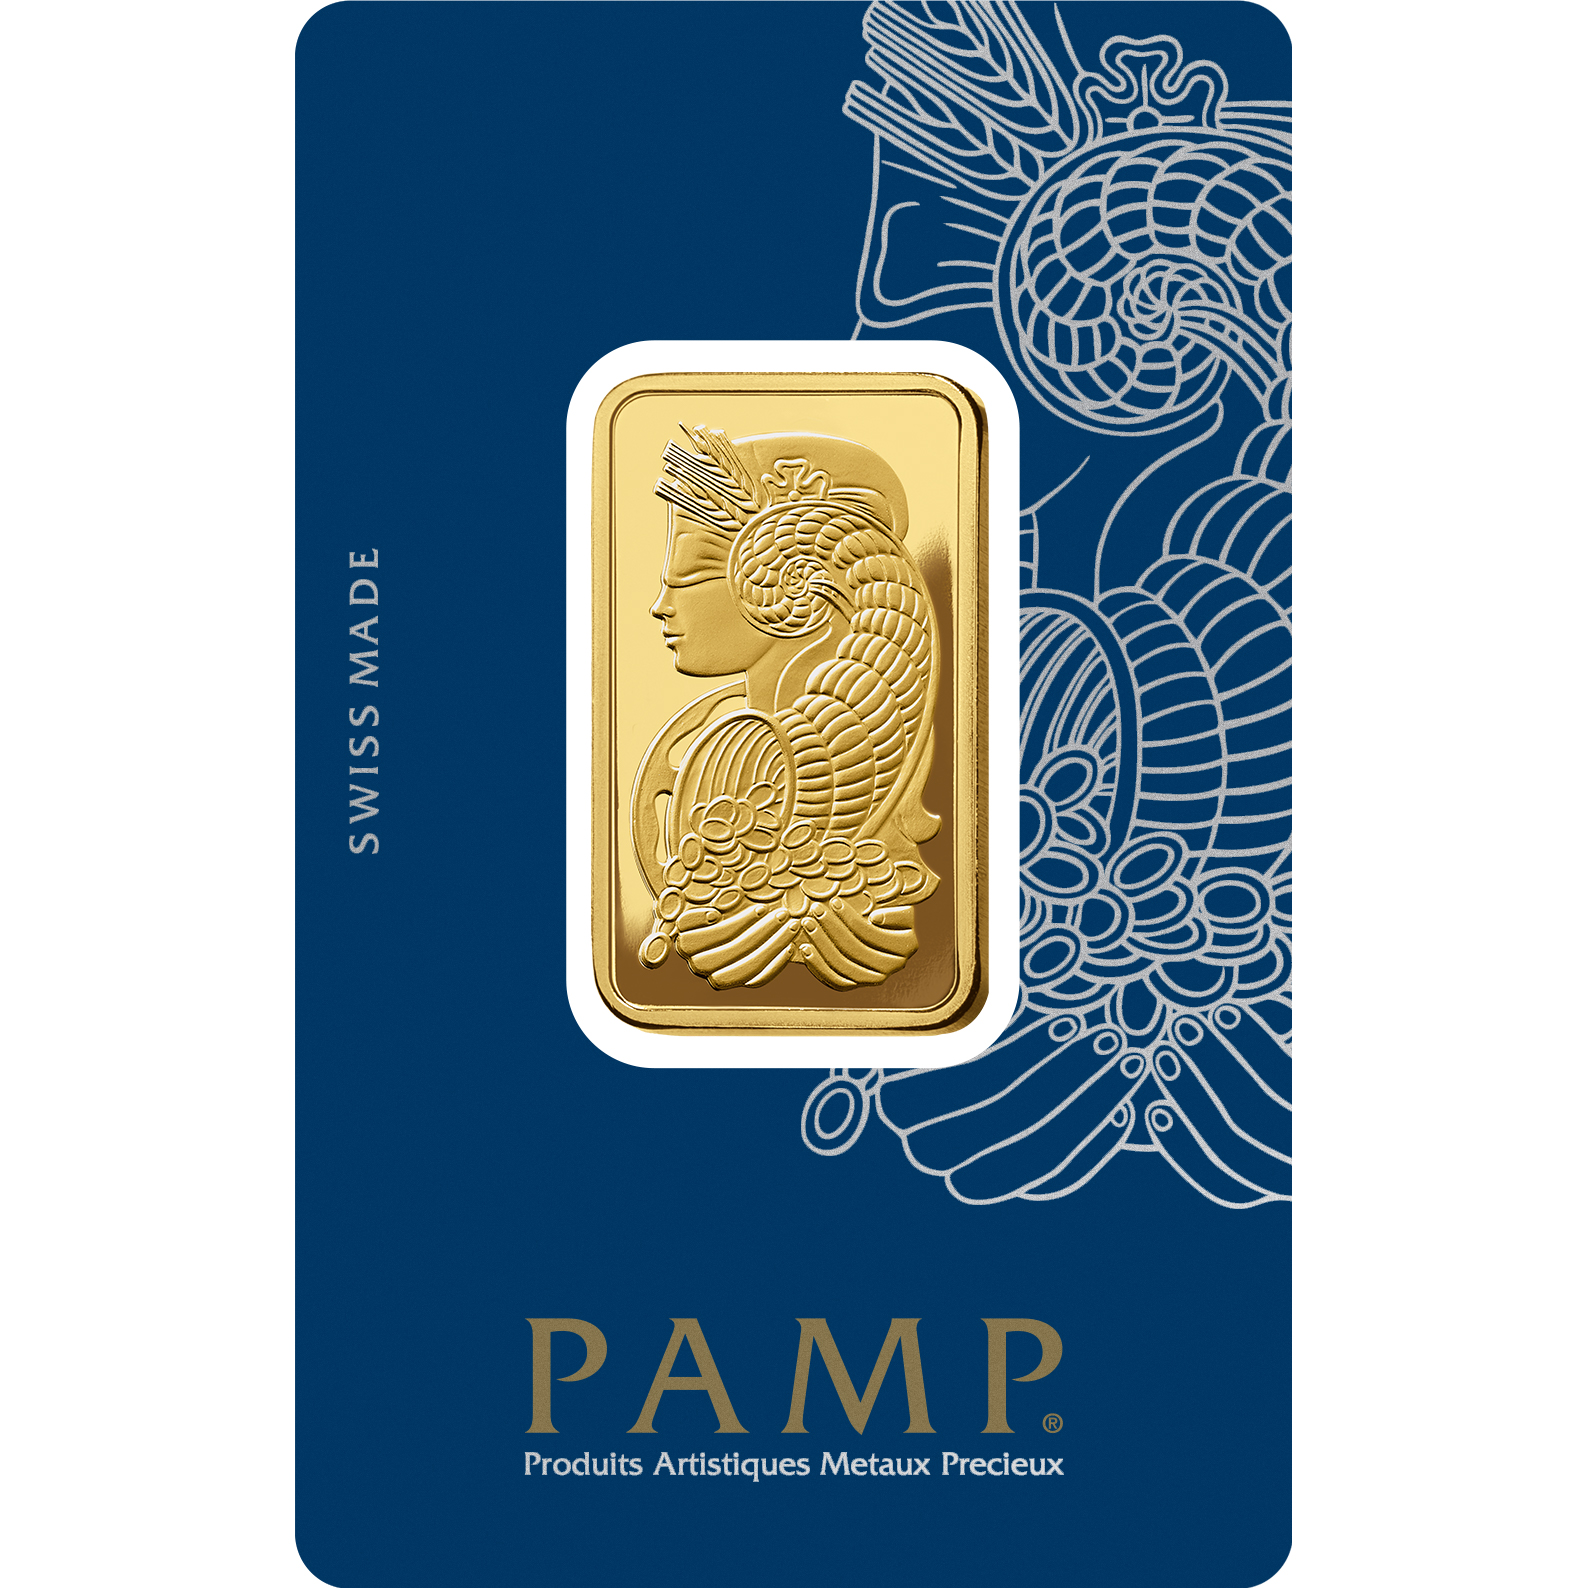 2 tolas Gold Bar - PAMP Suisse Lady Fortuna Veriscan